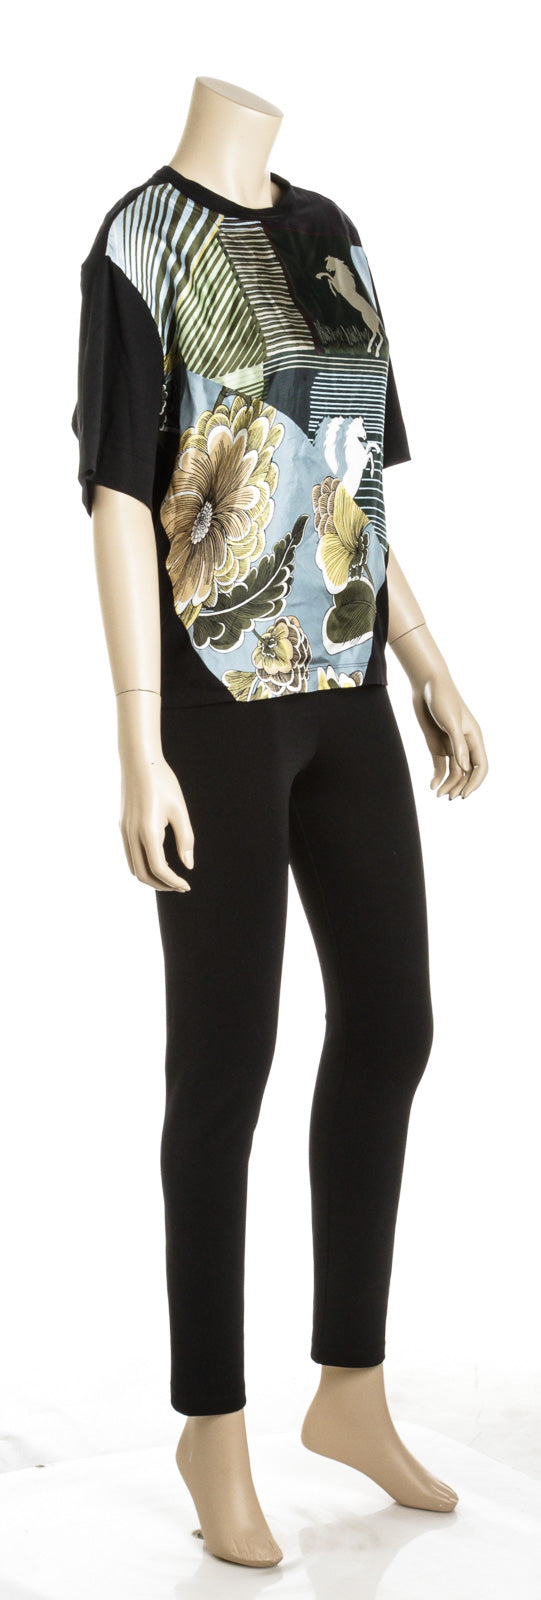 Chloe Black and Multicolor Cotton and Silk Horse Print Scarf Top (Size S)